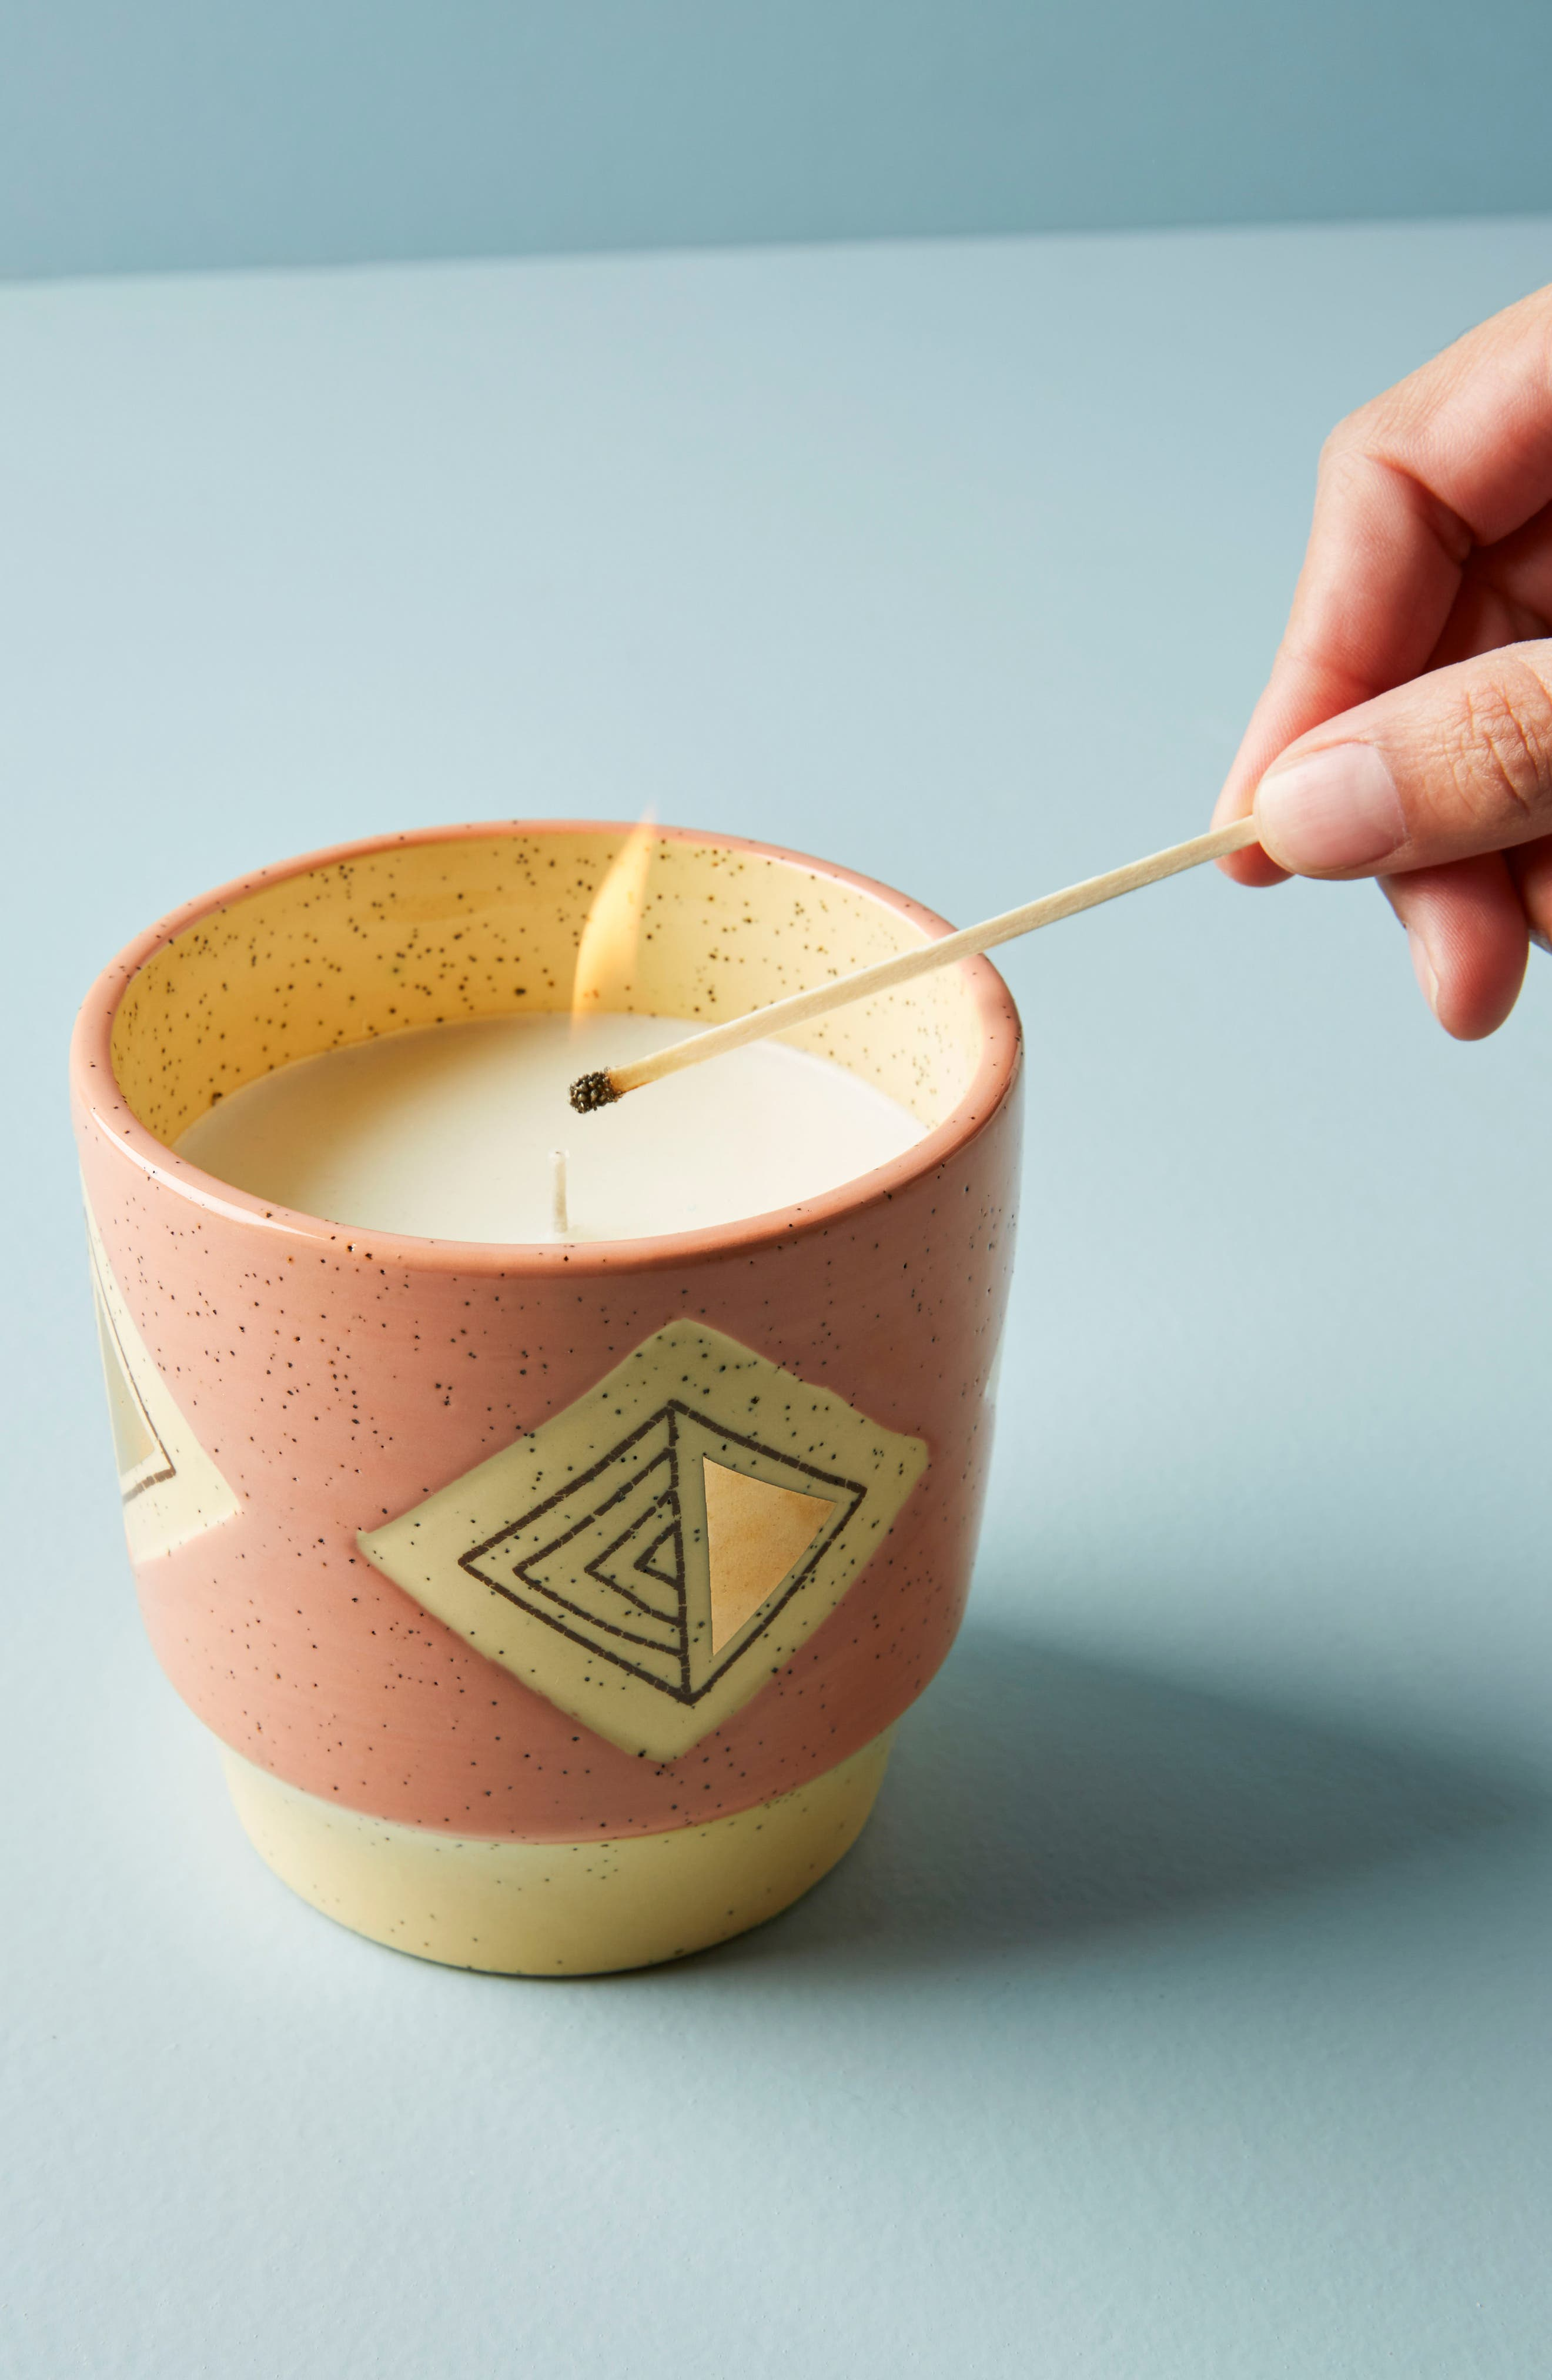 Anthropologie Ontario Candle